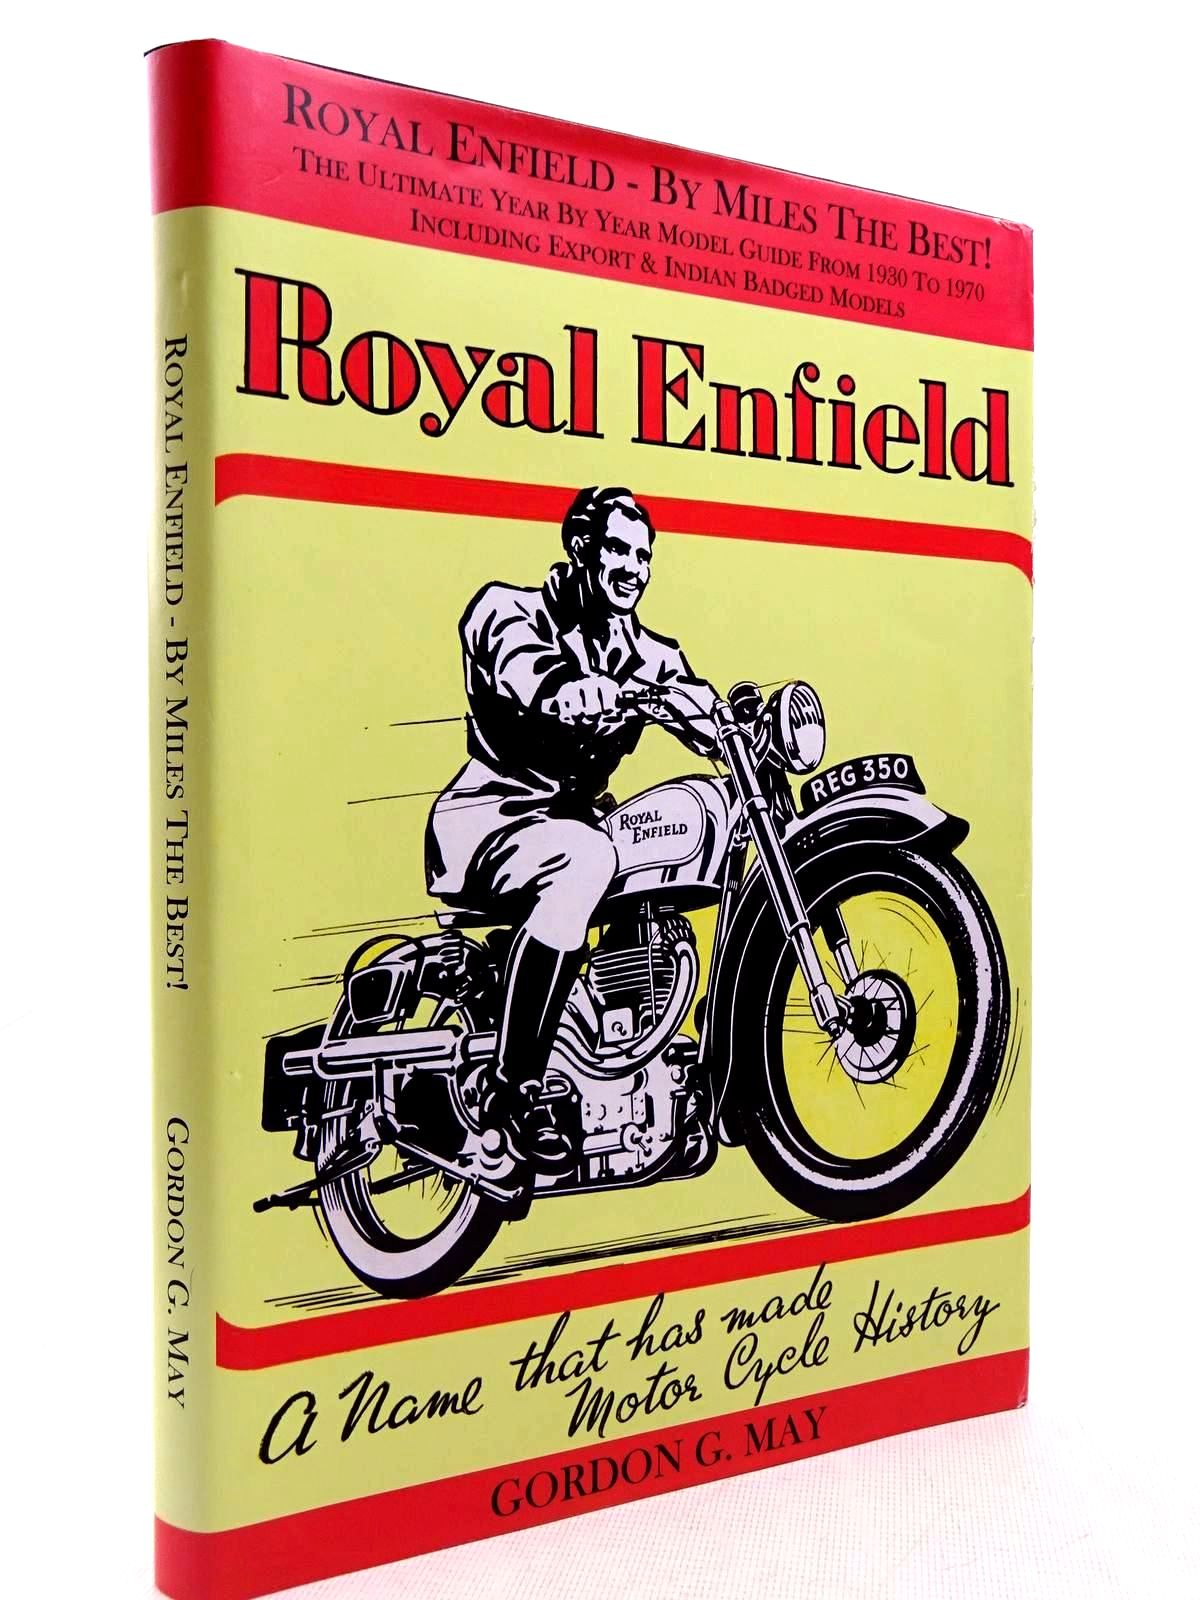 Photo of ROYAL ENFIELD - BY MILES THE BEST! written by May, Gordon G. published by RG Publishing (STOCK CODE: 2128957)  for sale by Stella & Rose's Books